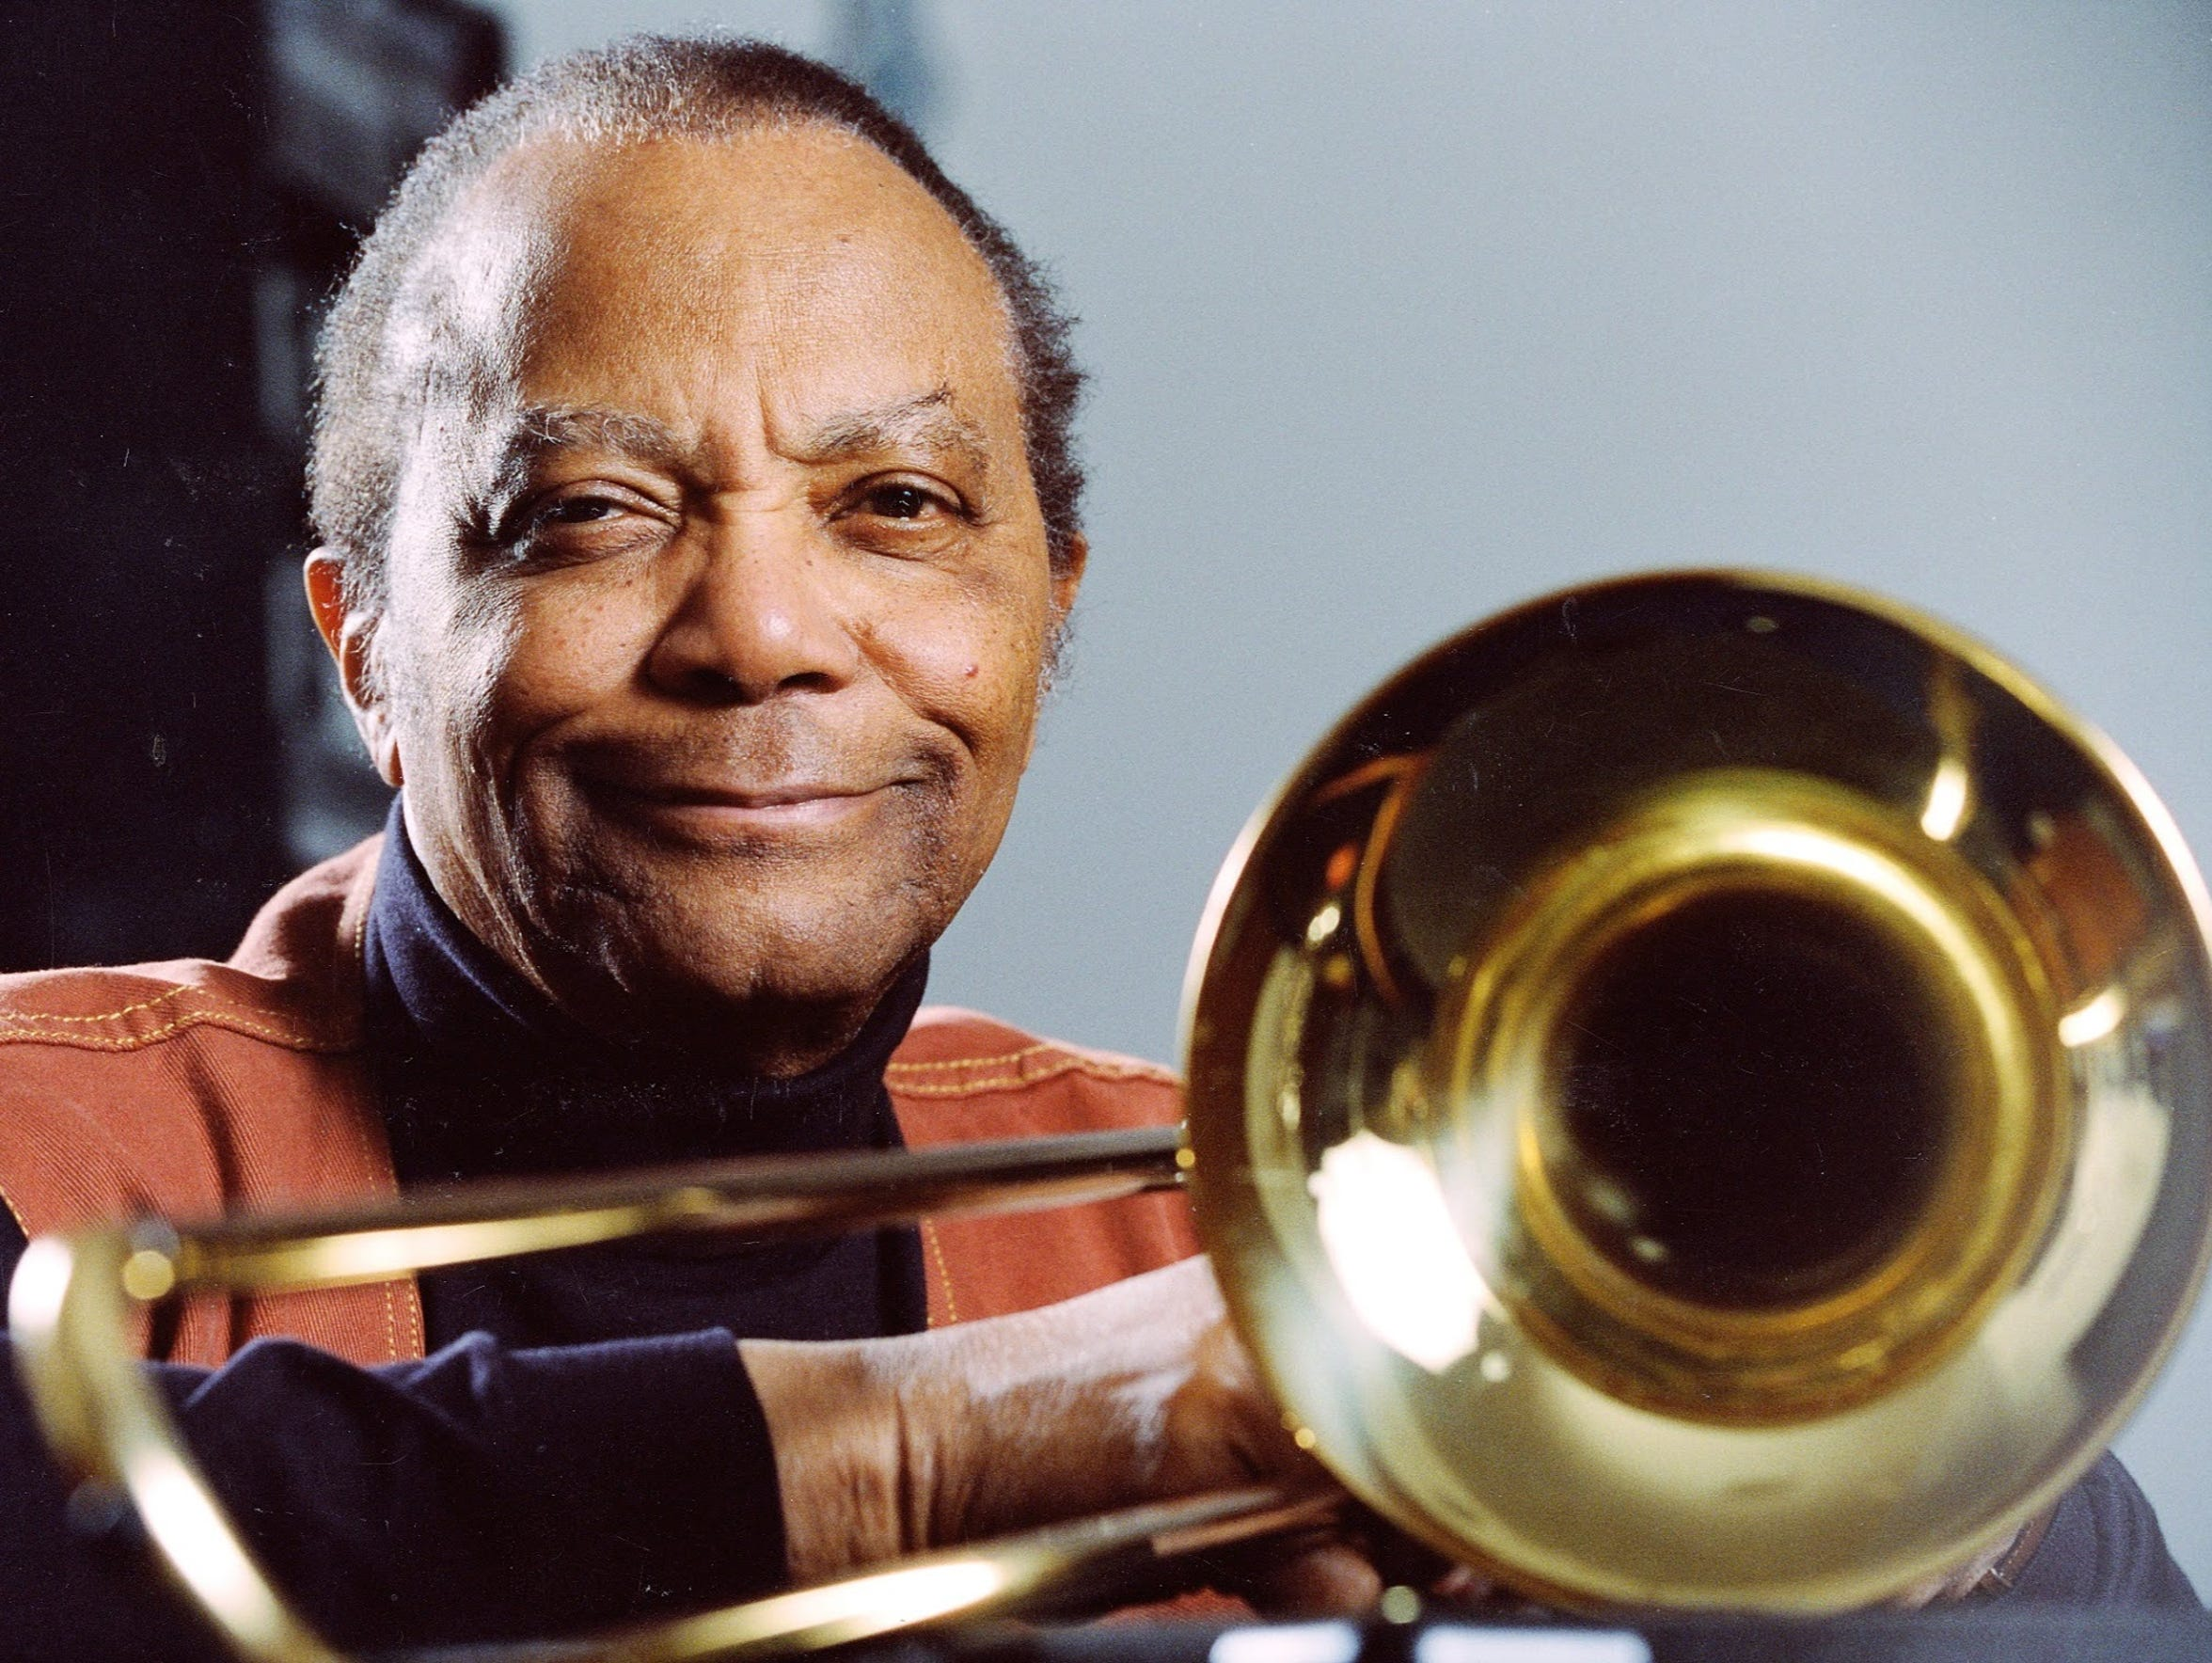 J.J. Johnson made the trombone a high-profile instrument